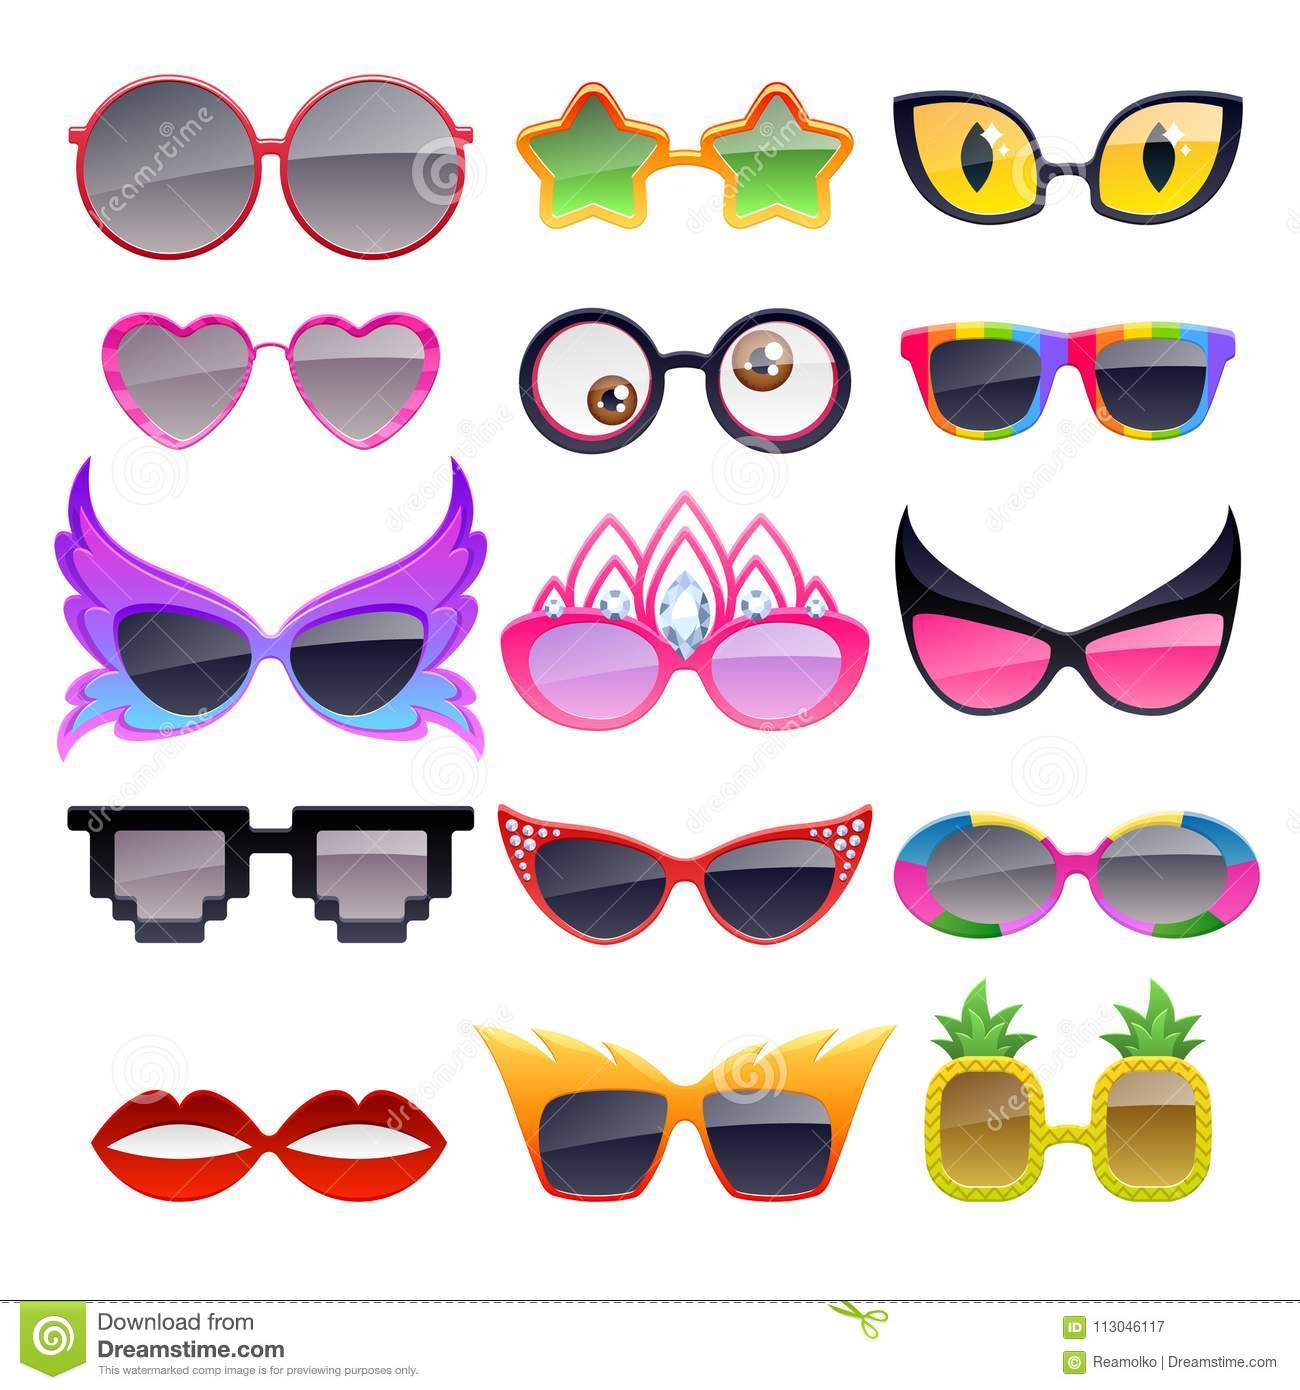 2b7428c93a3 Set of colorful party sunglasses icons. Funny fashion glasses accessories.  More similar stock illustrations